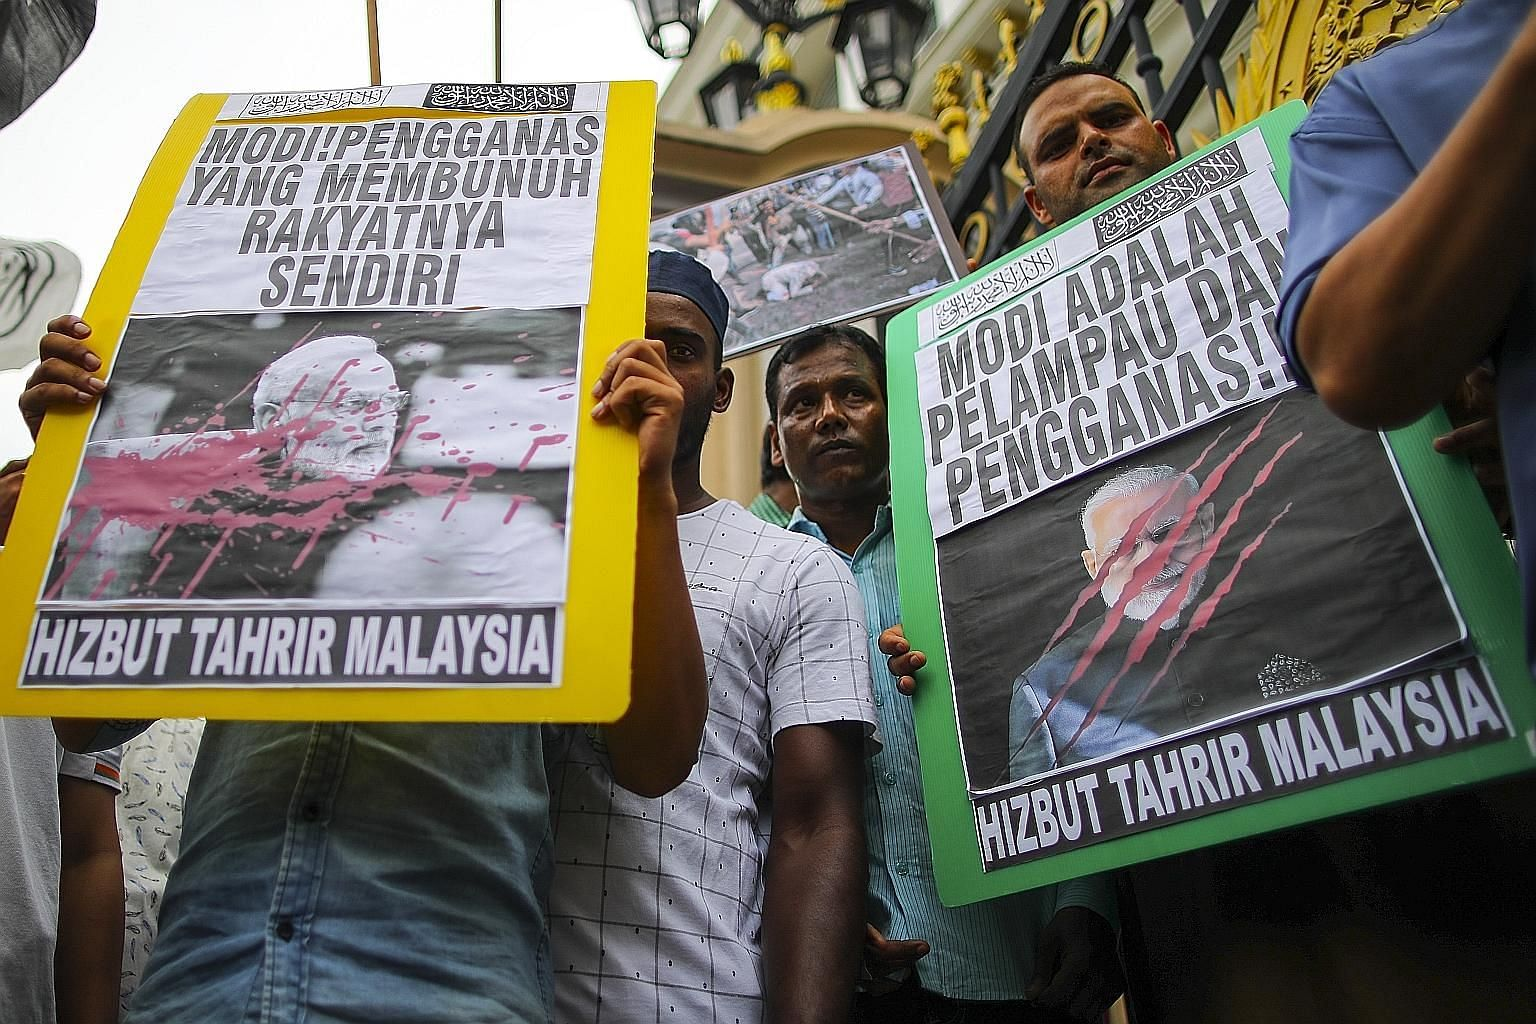 Demonstrators with placards calling for an end to violence against the Muslim community in India, outside India's High Commission in Kuala Lumpur, Malaysia, last week. Large parts of India's capital New Delhi erupted in violence between Hindus and Mu